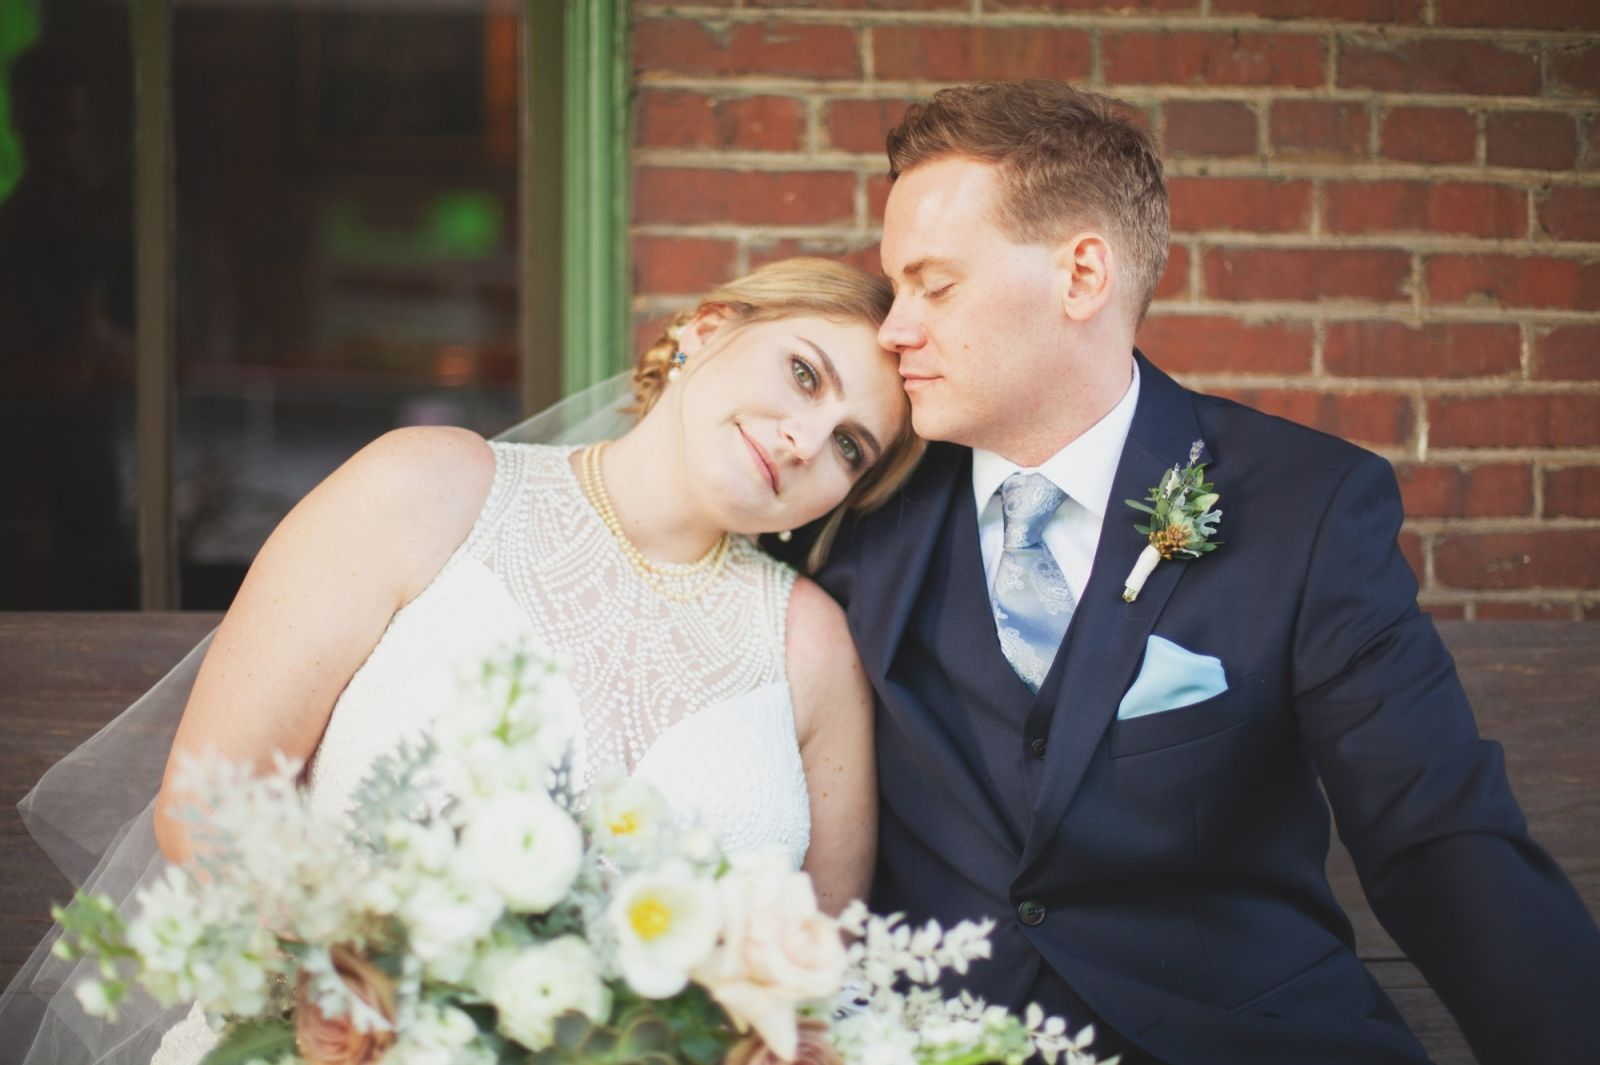 mcconnell house wedding in franklin, tnbride and groom